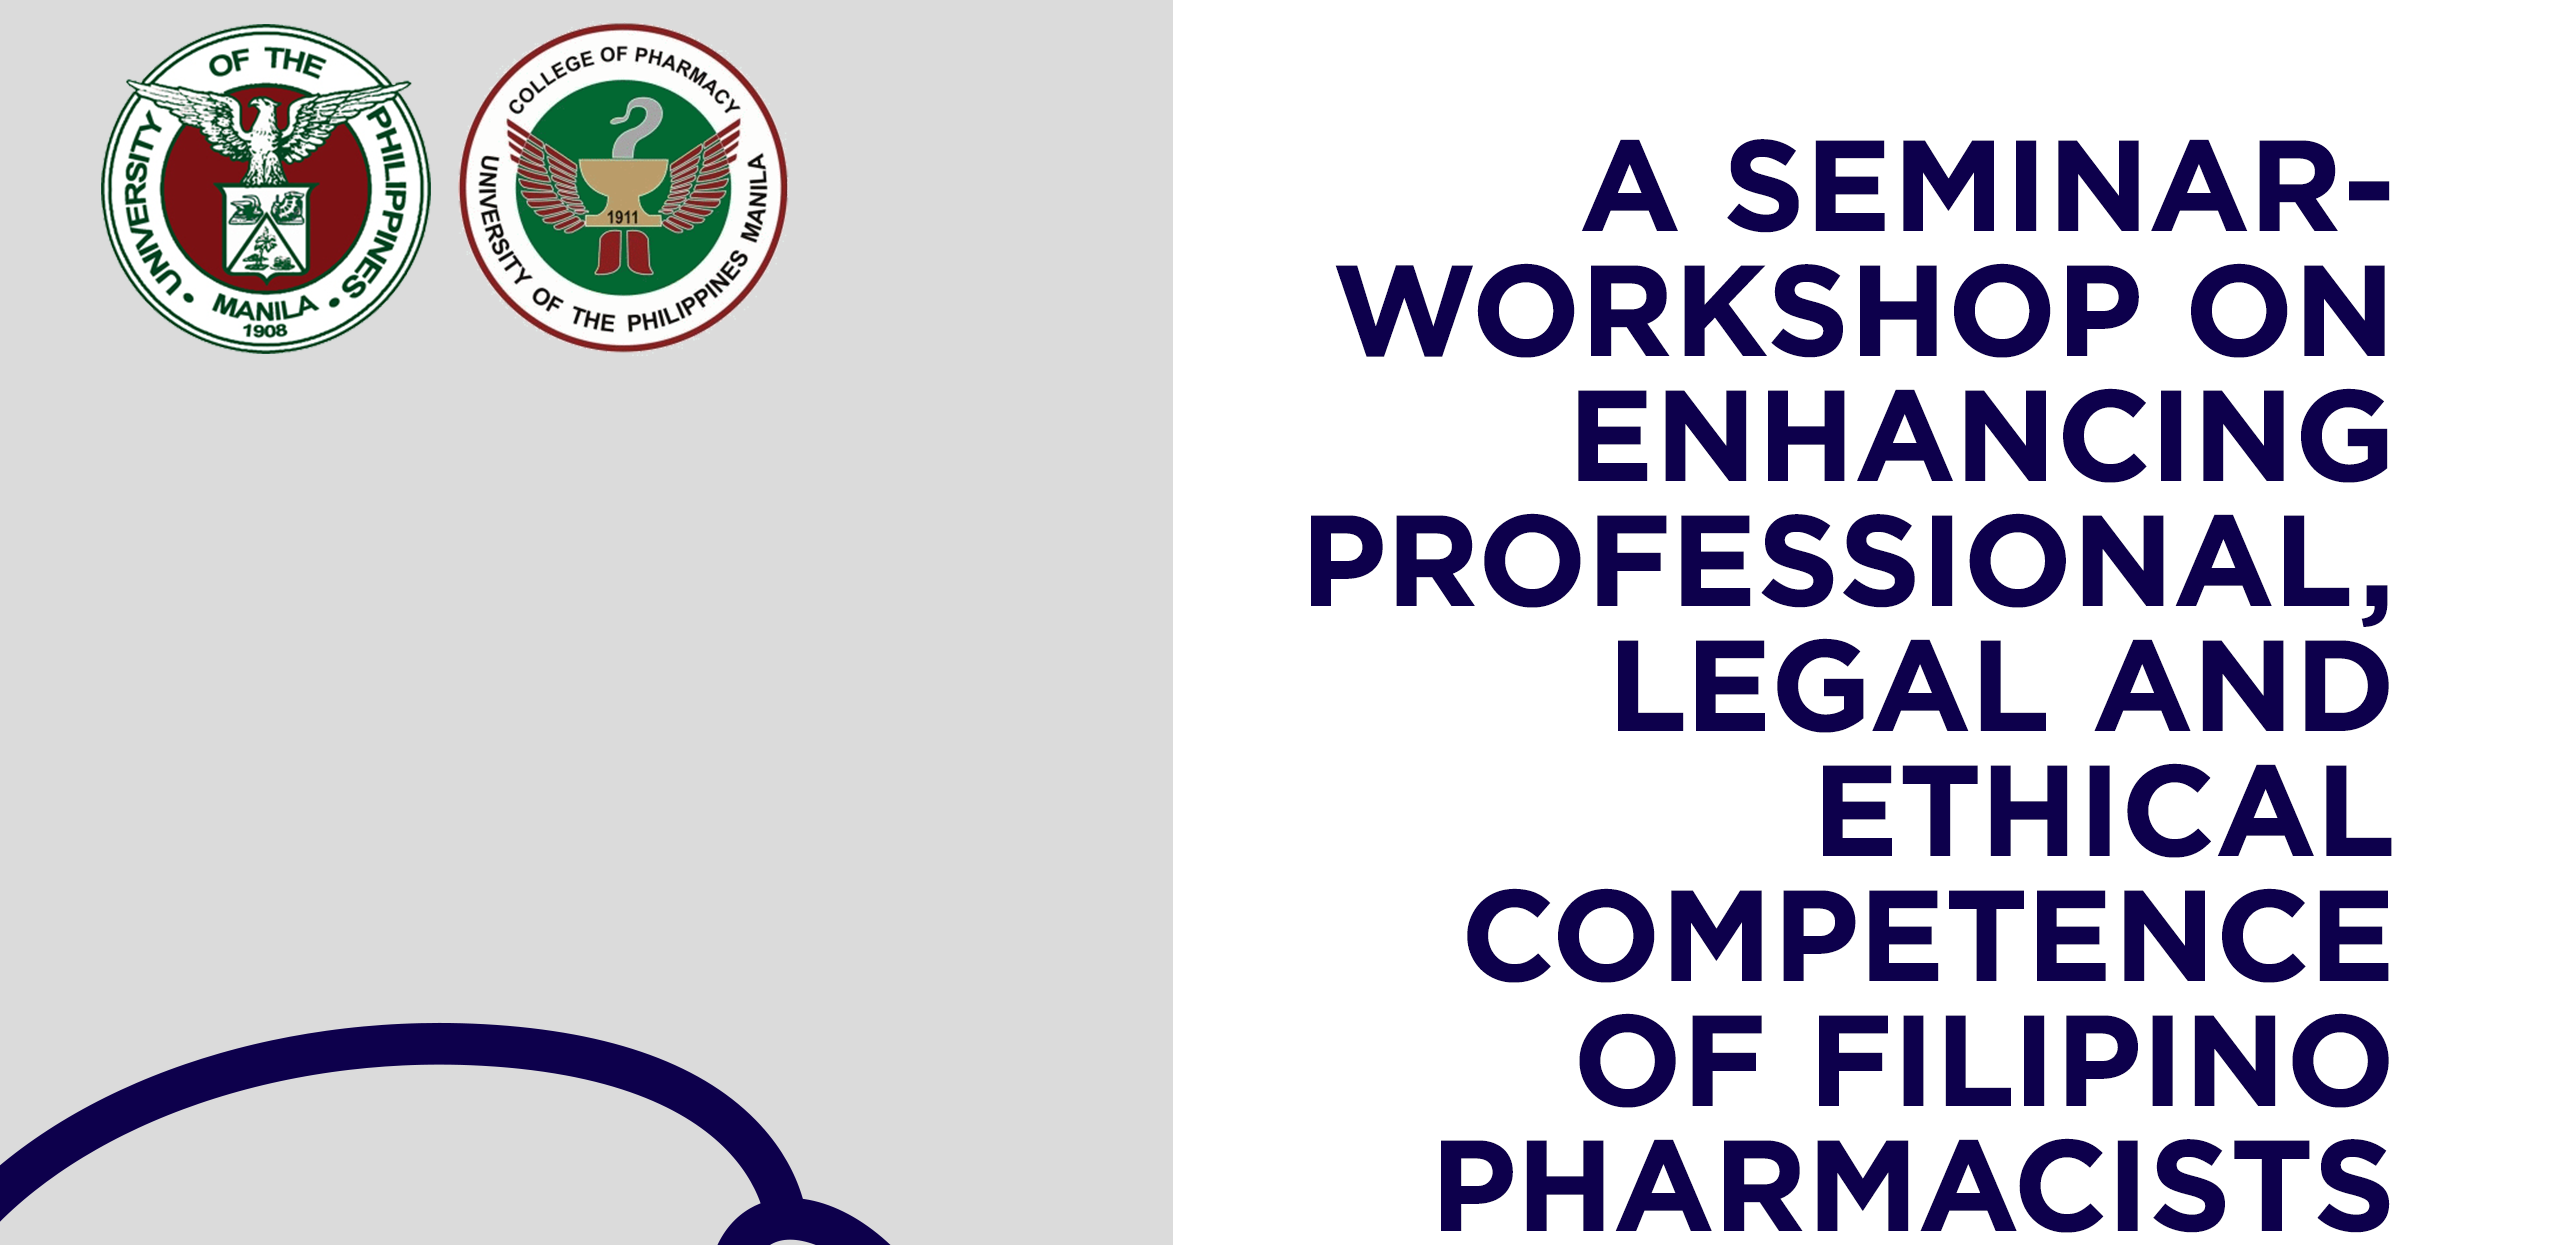 CPD Seminar On Enhancing Professional, Legal, And Ethical Competence Of Filipino Pharmacists